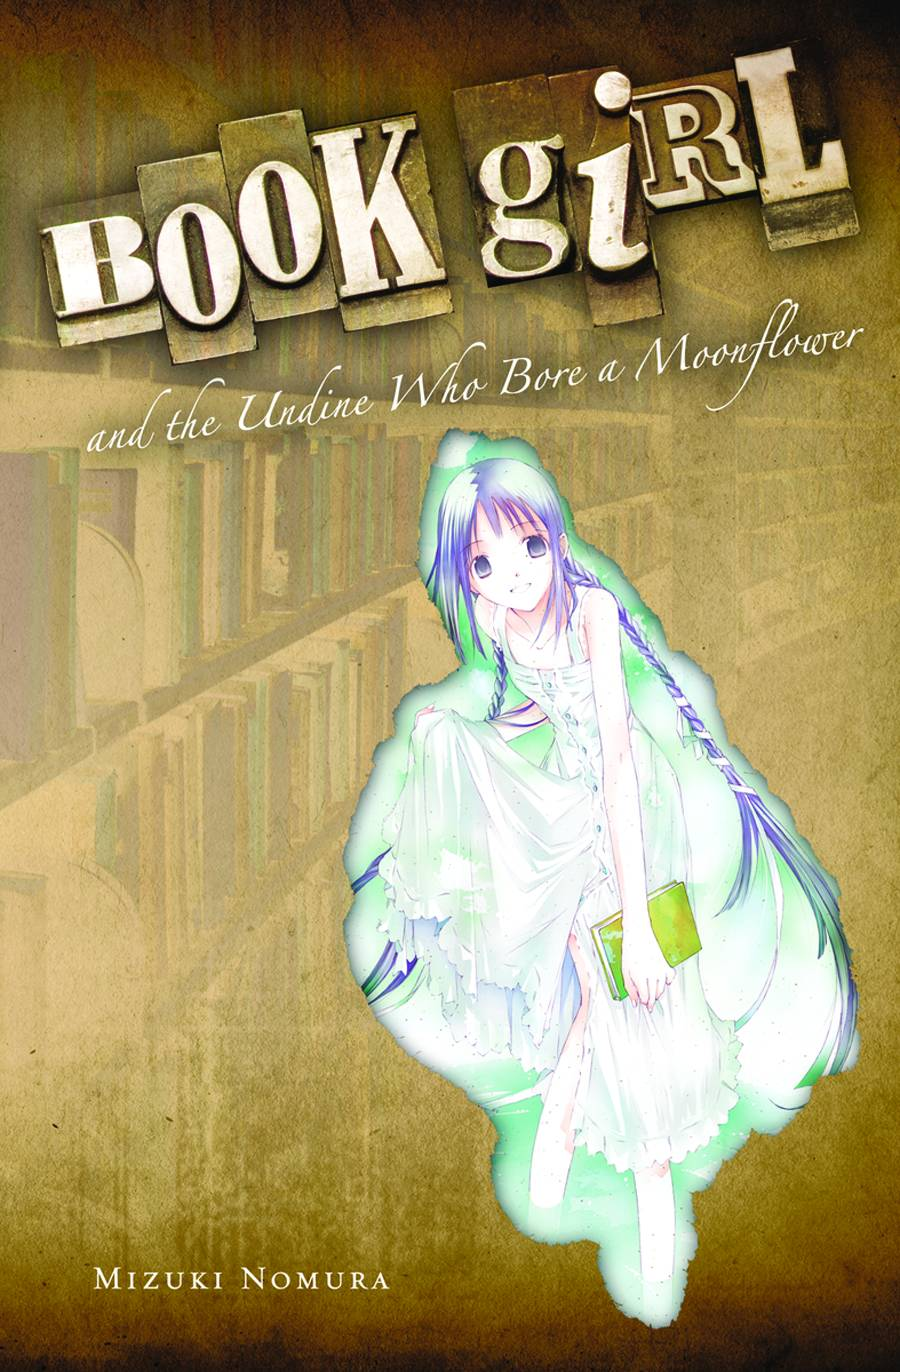 Book Girl and the Un...